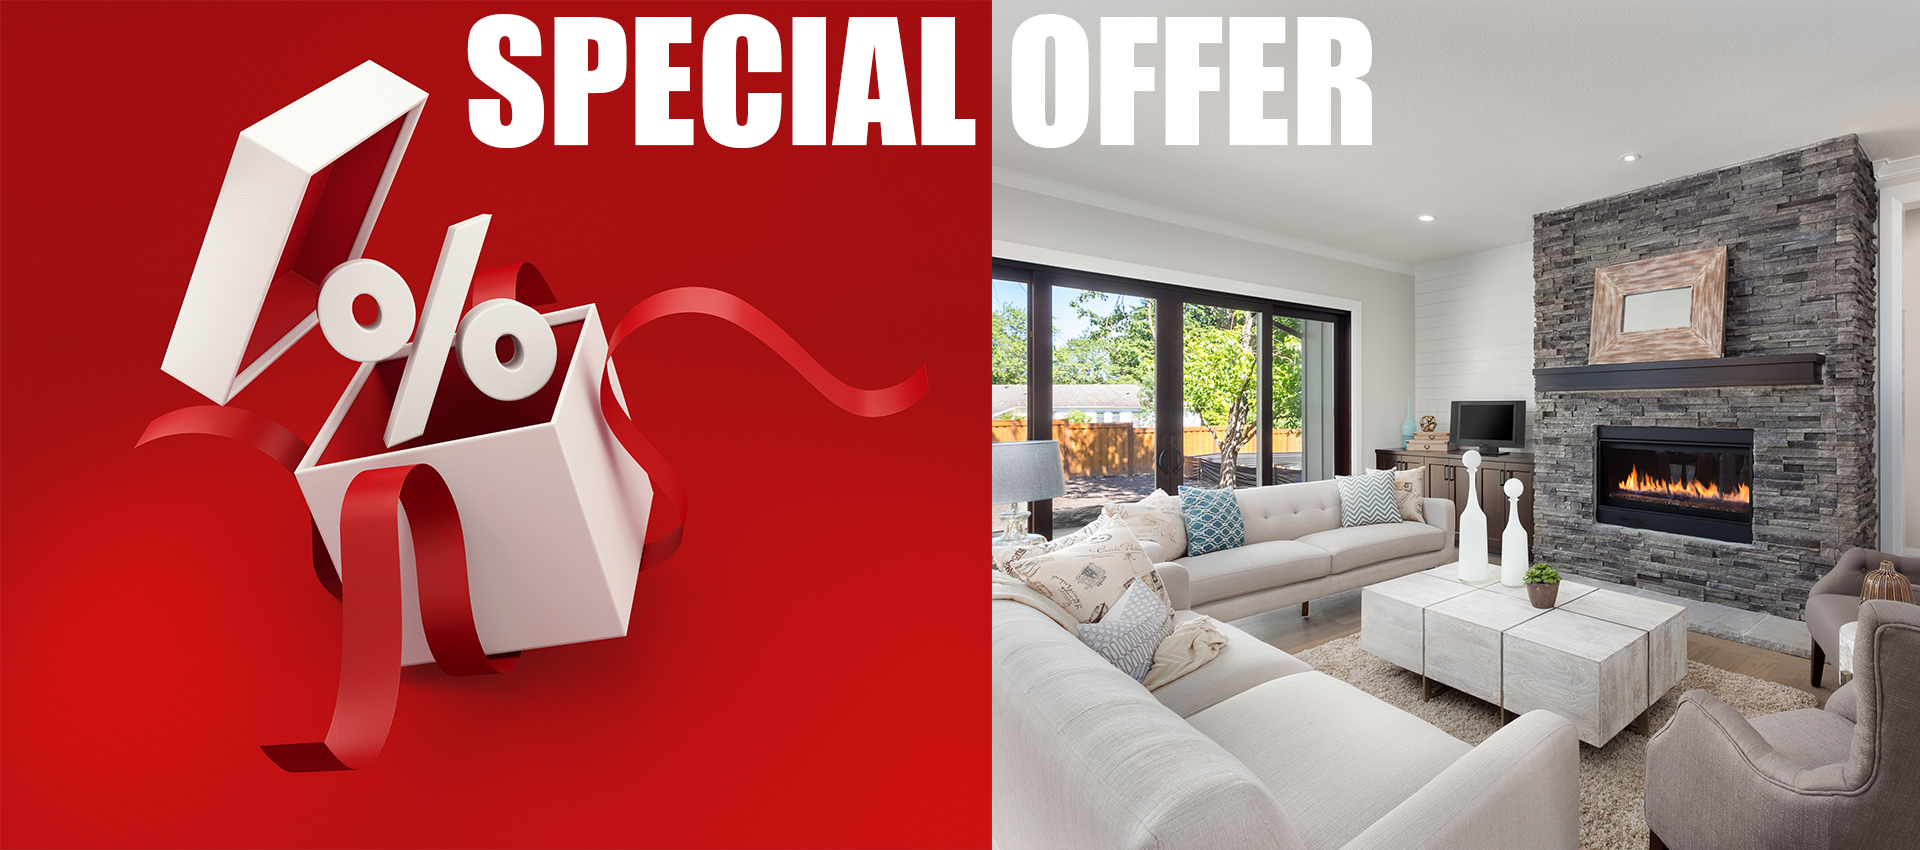 Basement financial special offer